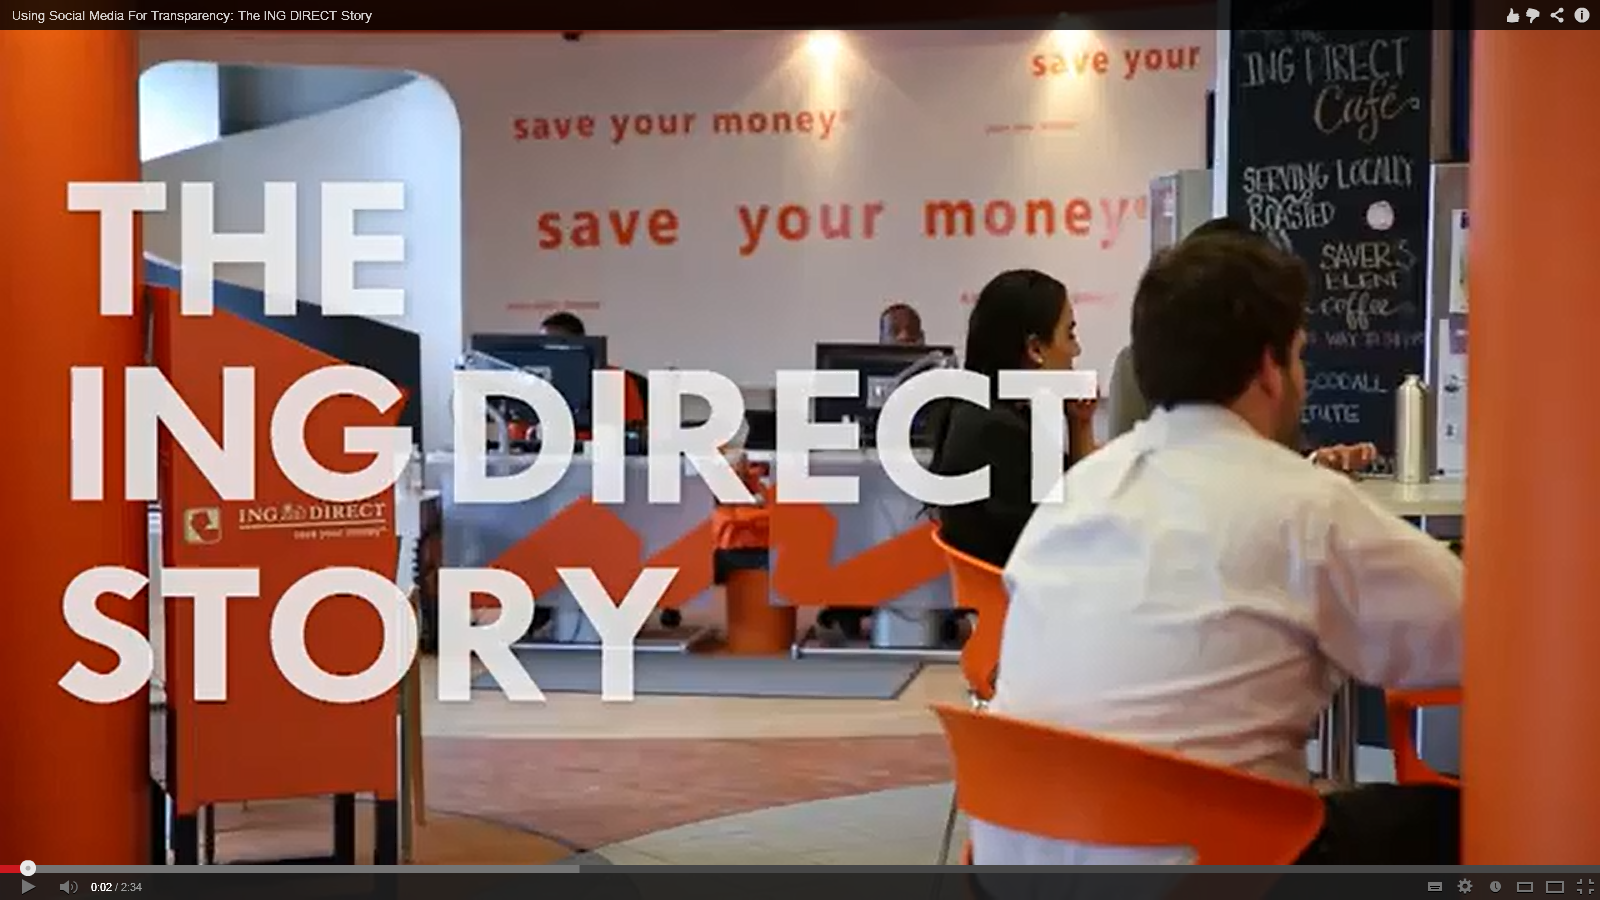 ING Direct Canada Embraces Social Media Banking Drive Transparency